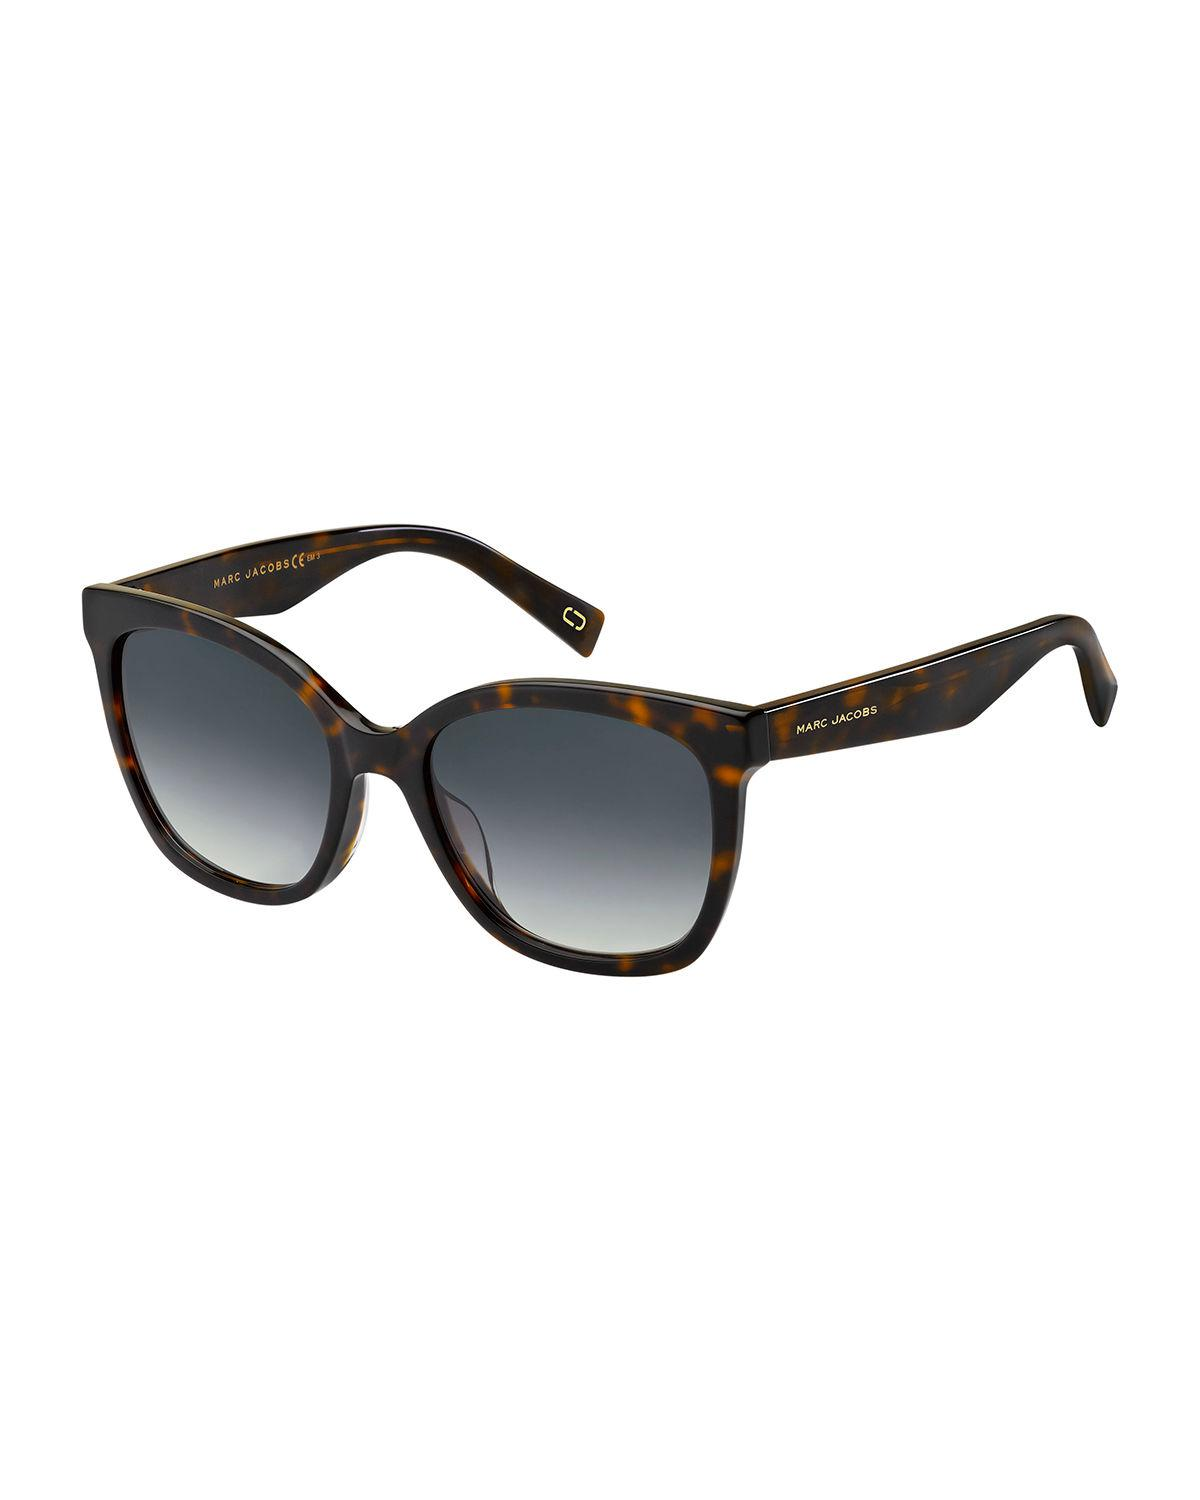 7bc371d59e7f Marc Jacobs - Brown Round Mirrored Acetate Sunglasses for Men - Lyst. View  fullscreen